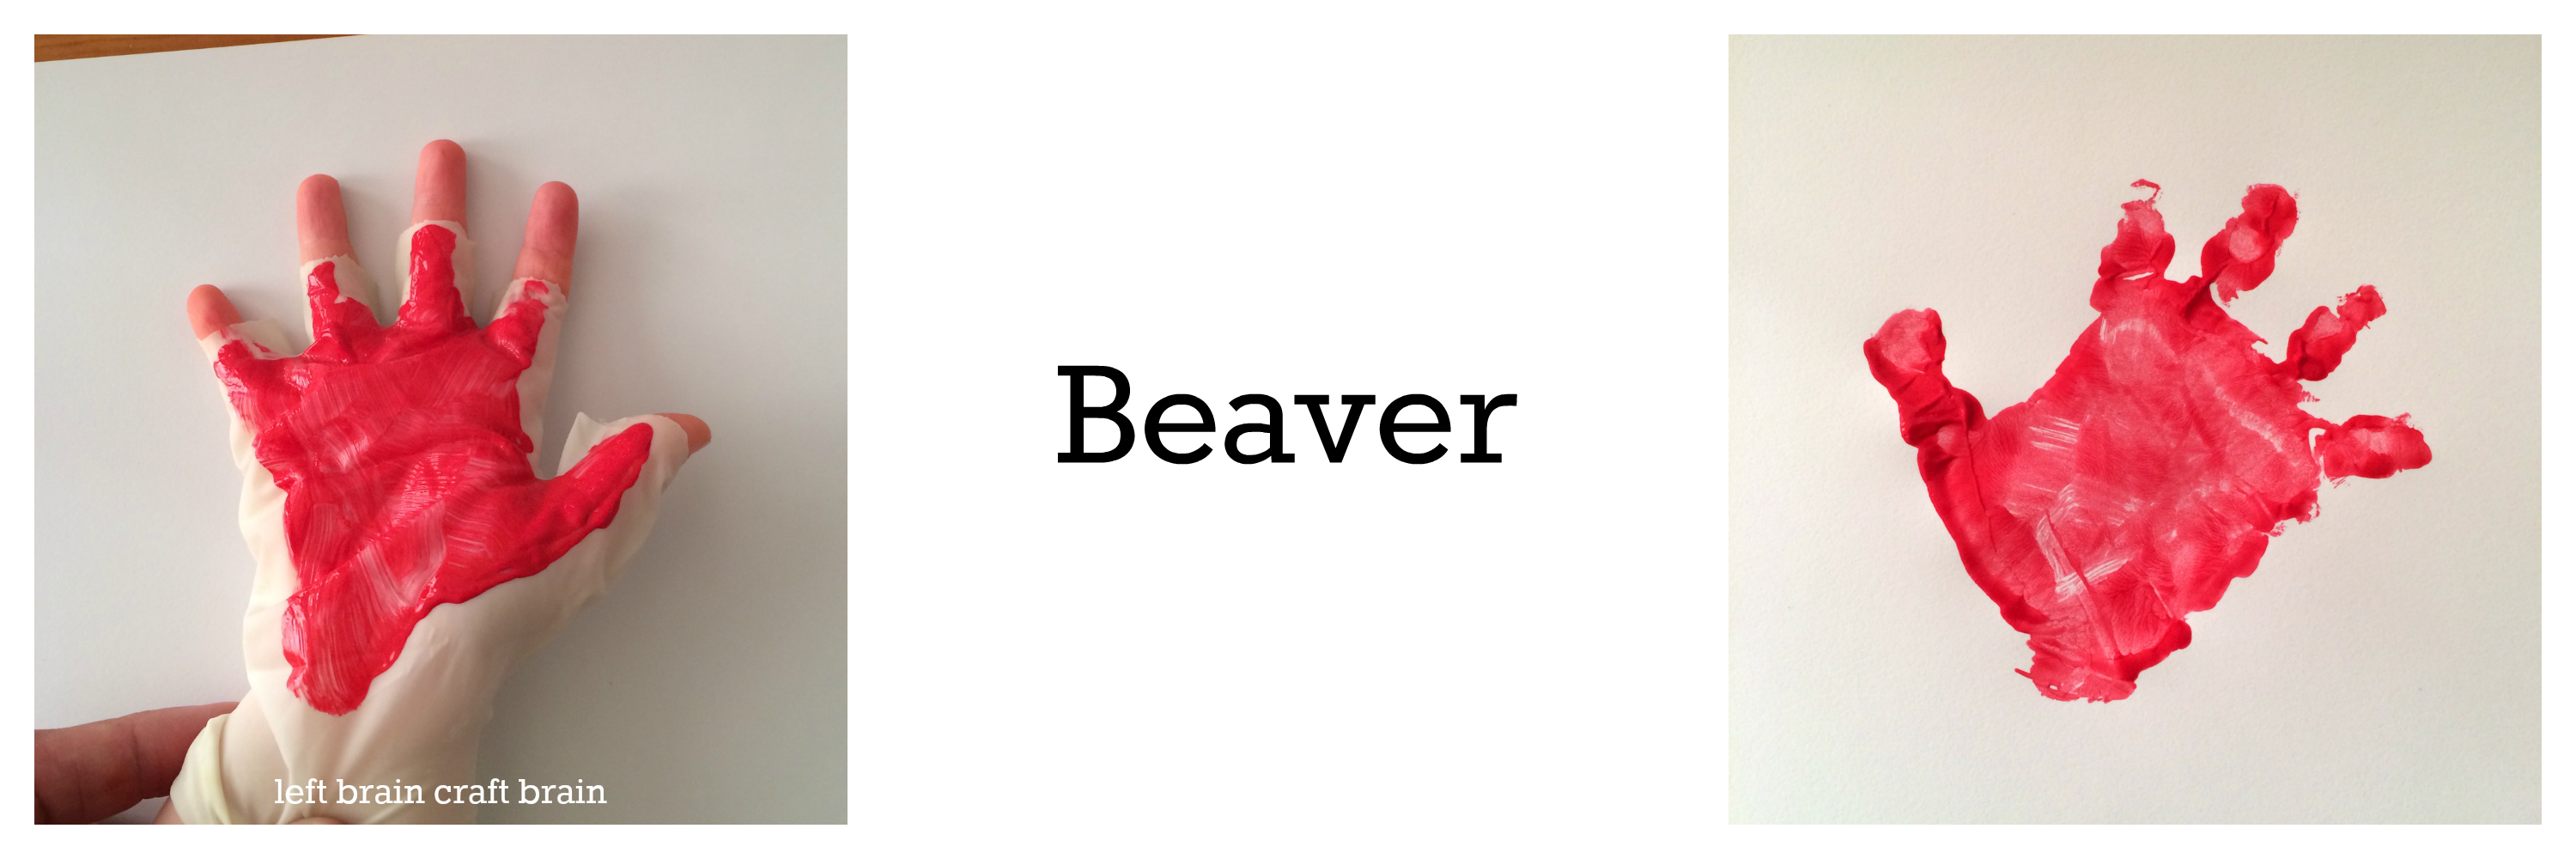 Beaver animal track hand print left brain craft brain